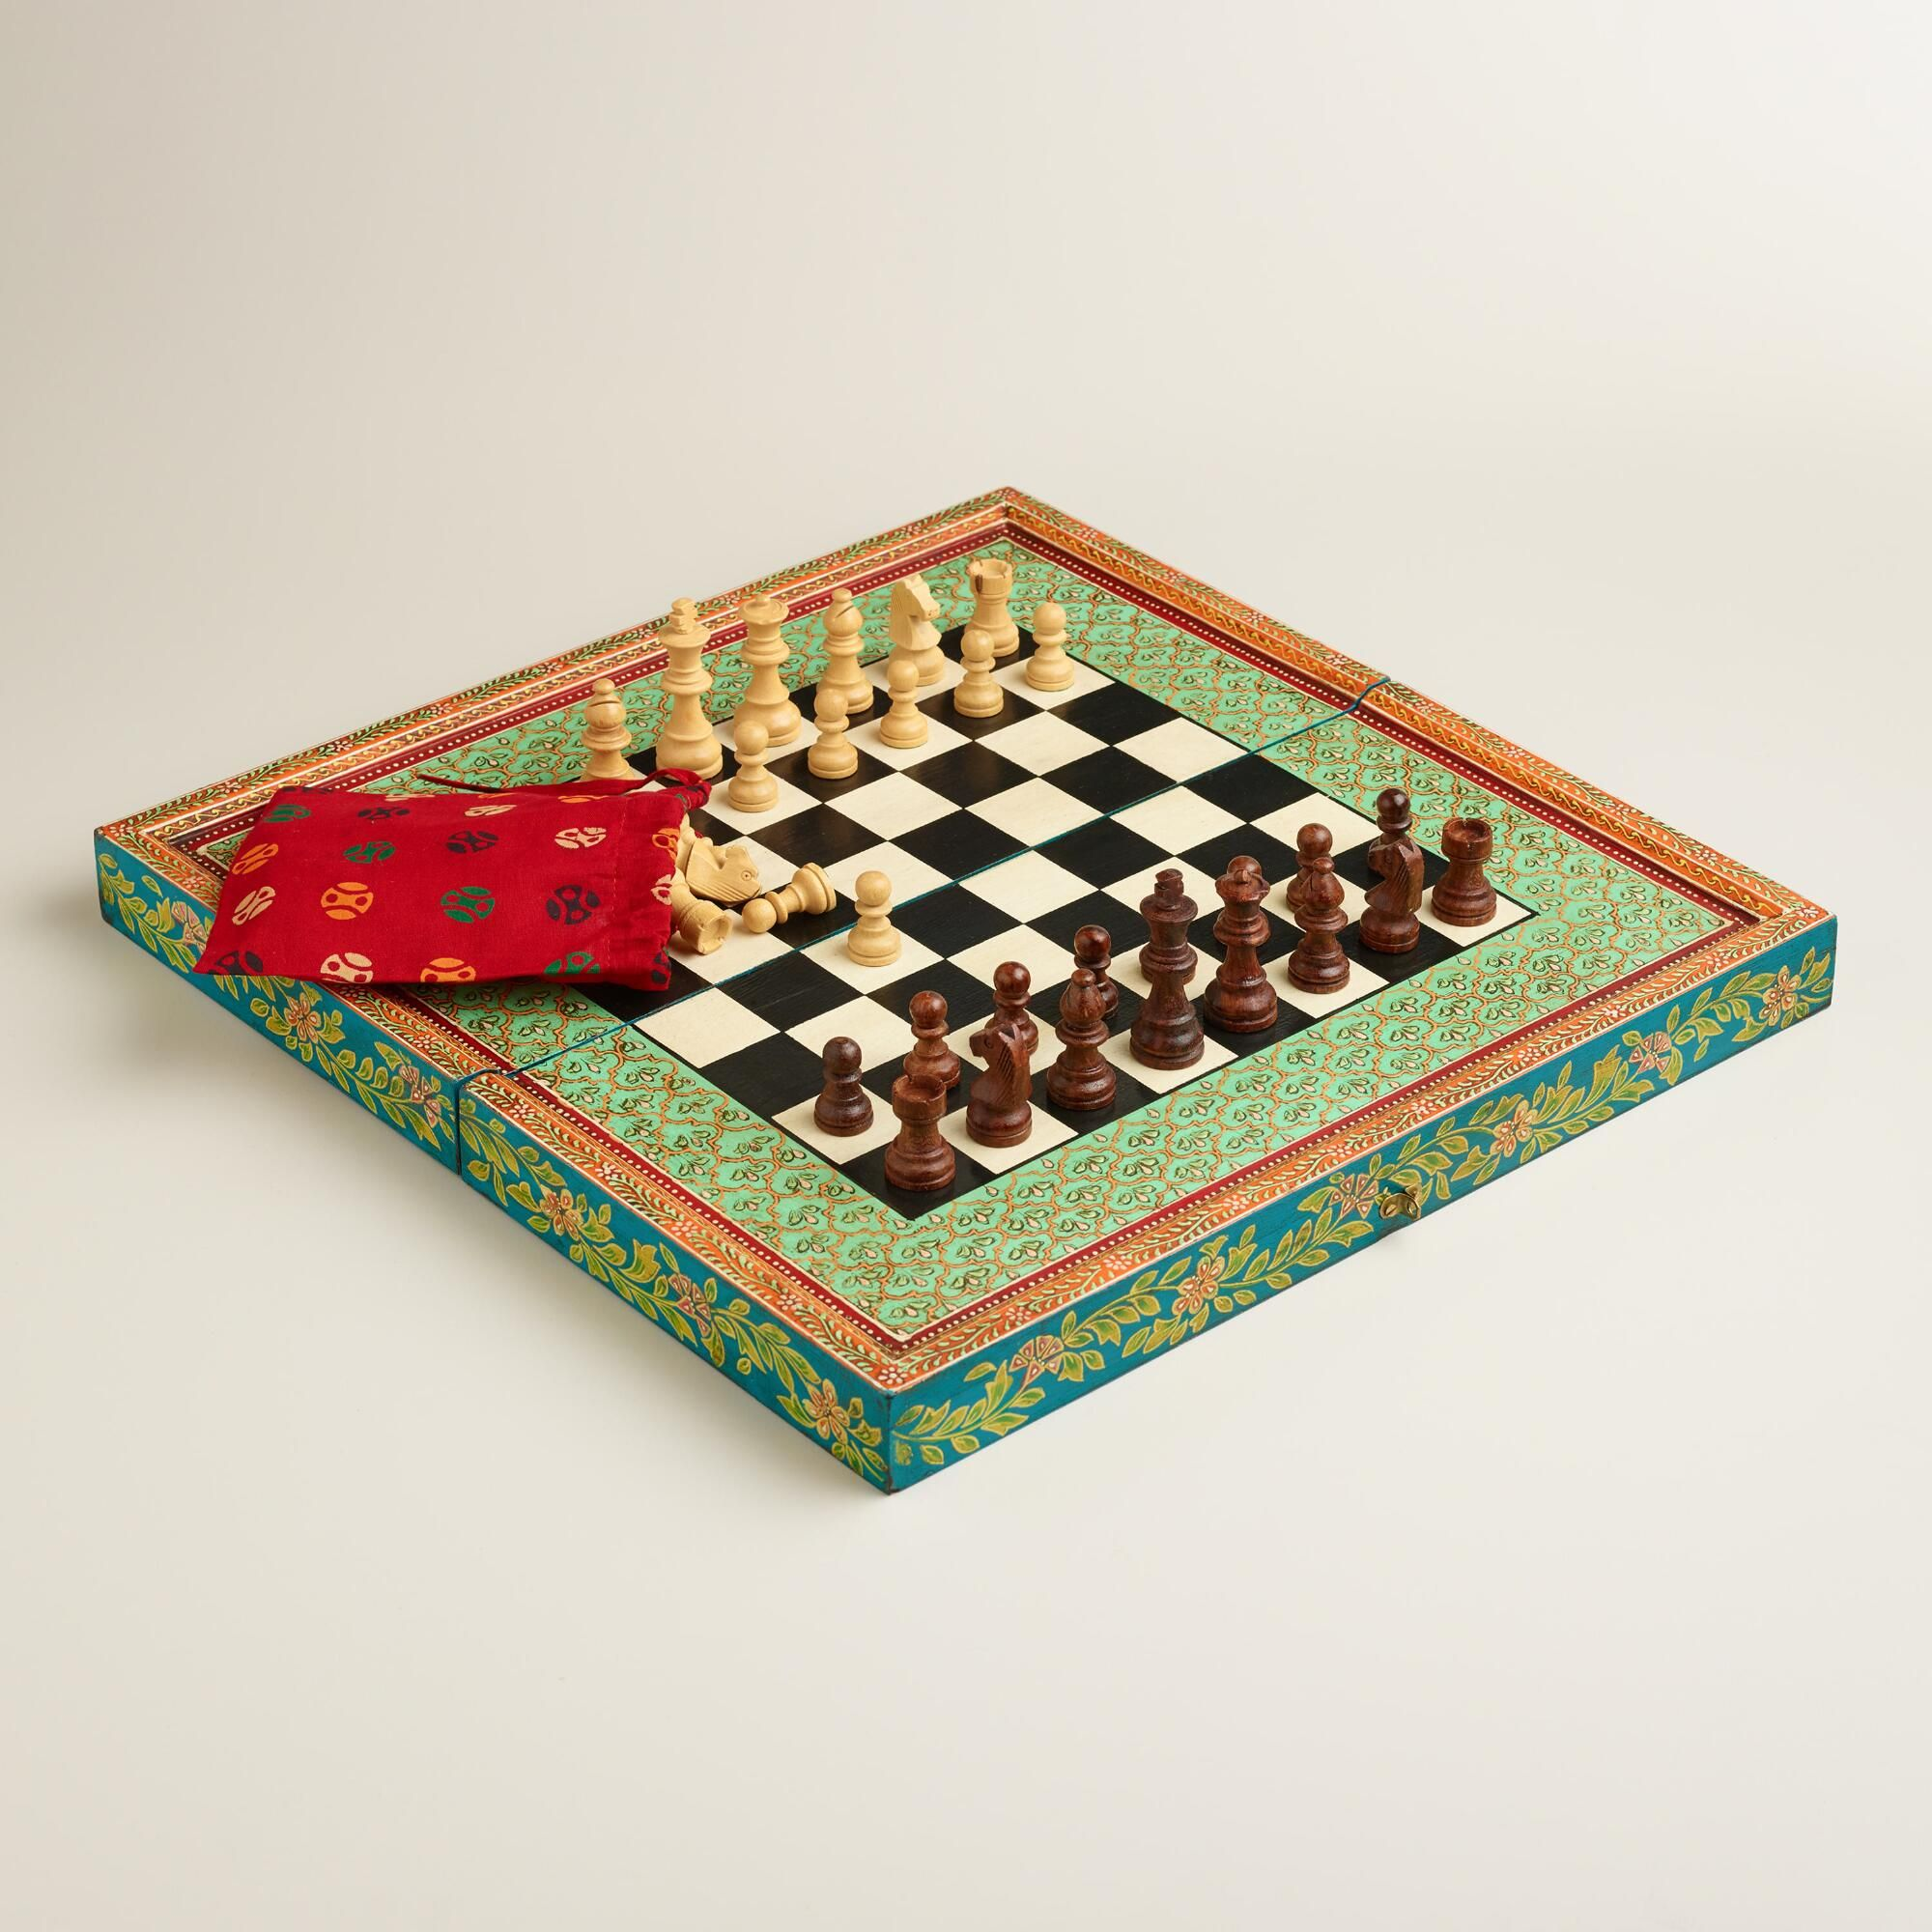 Worldmarket Hand Painted Chess Set